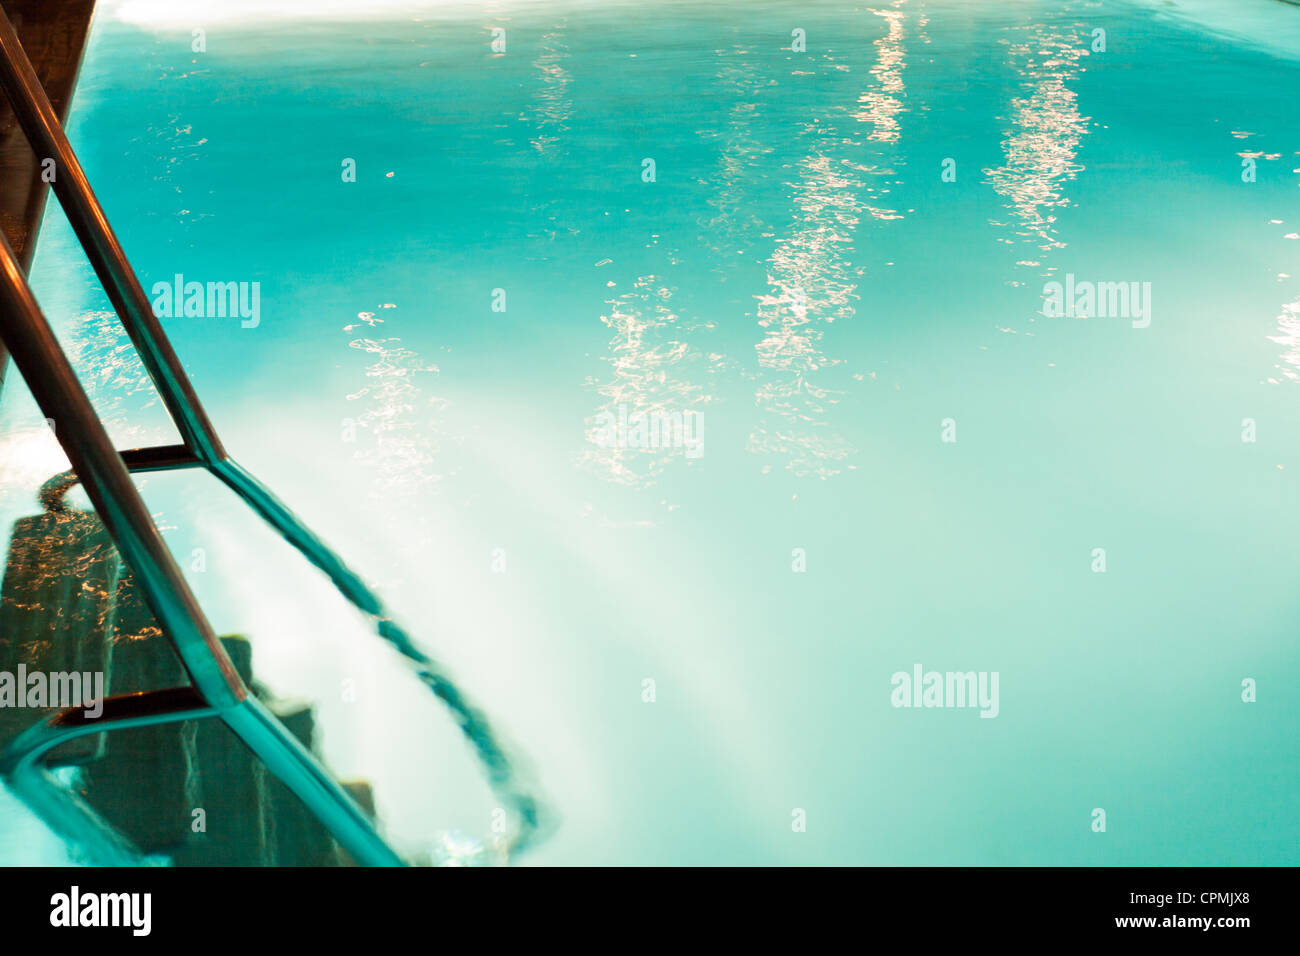 Stair ship stairs stock photos stair ship stairs stock images alamy for Late night swimming pools london